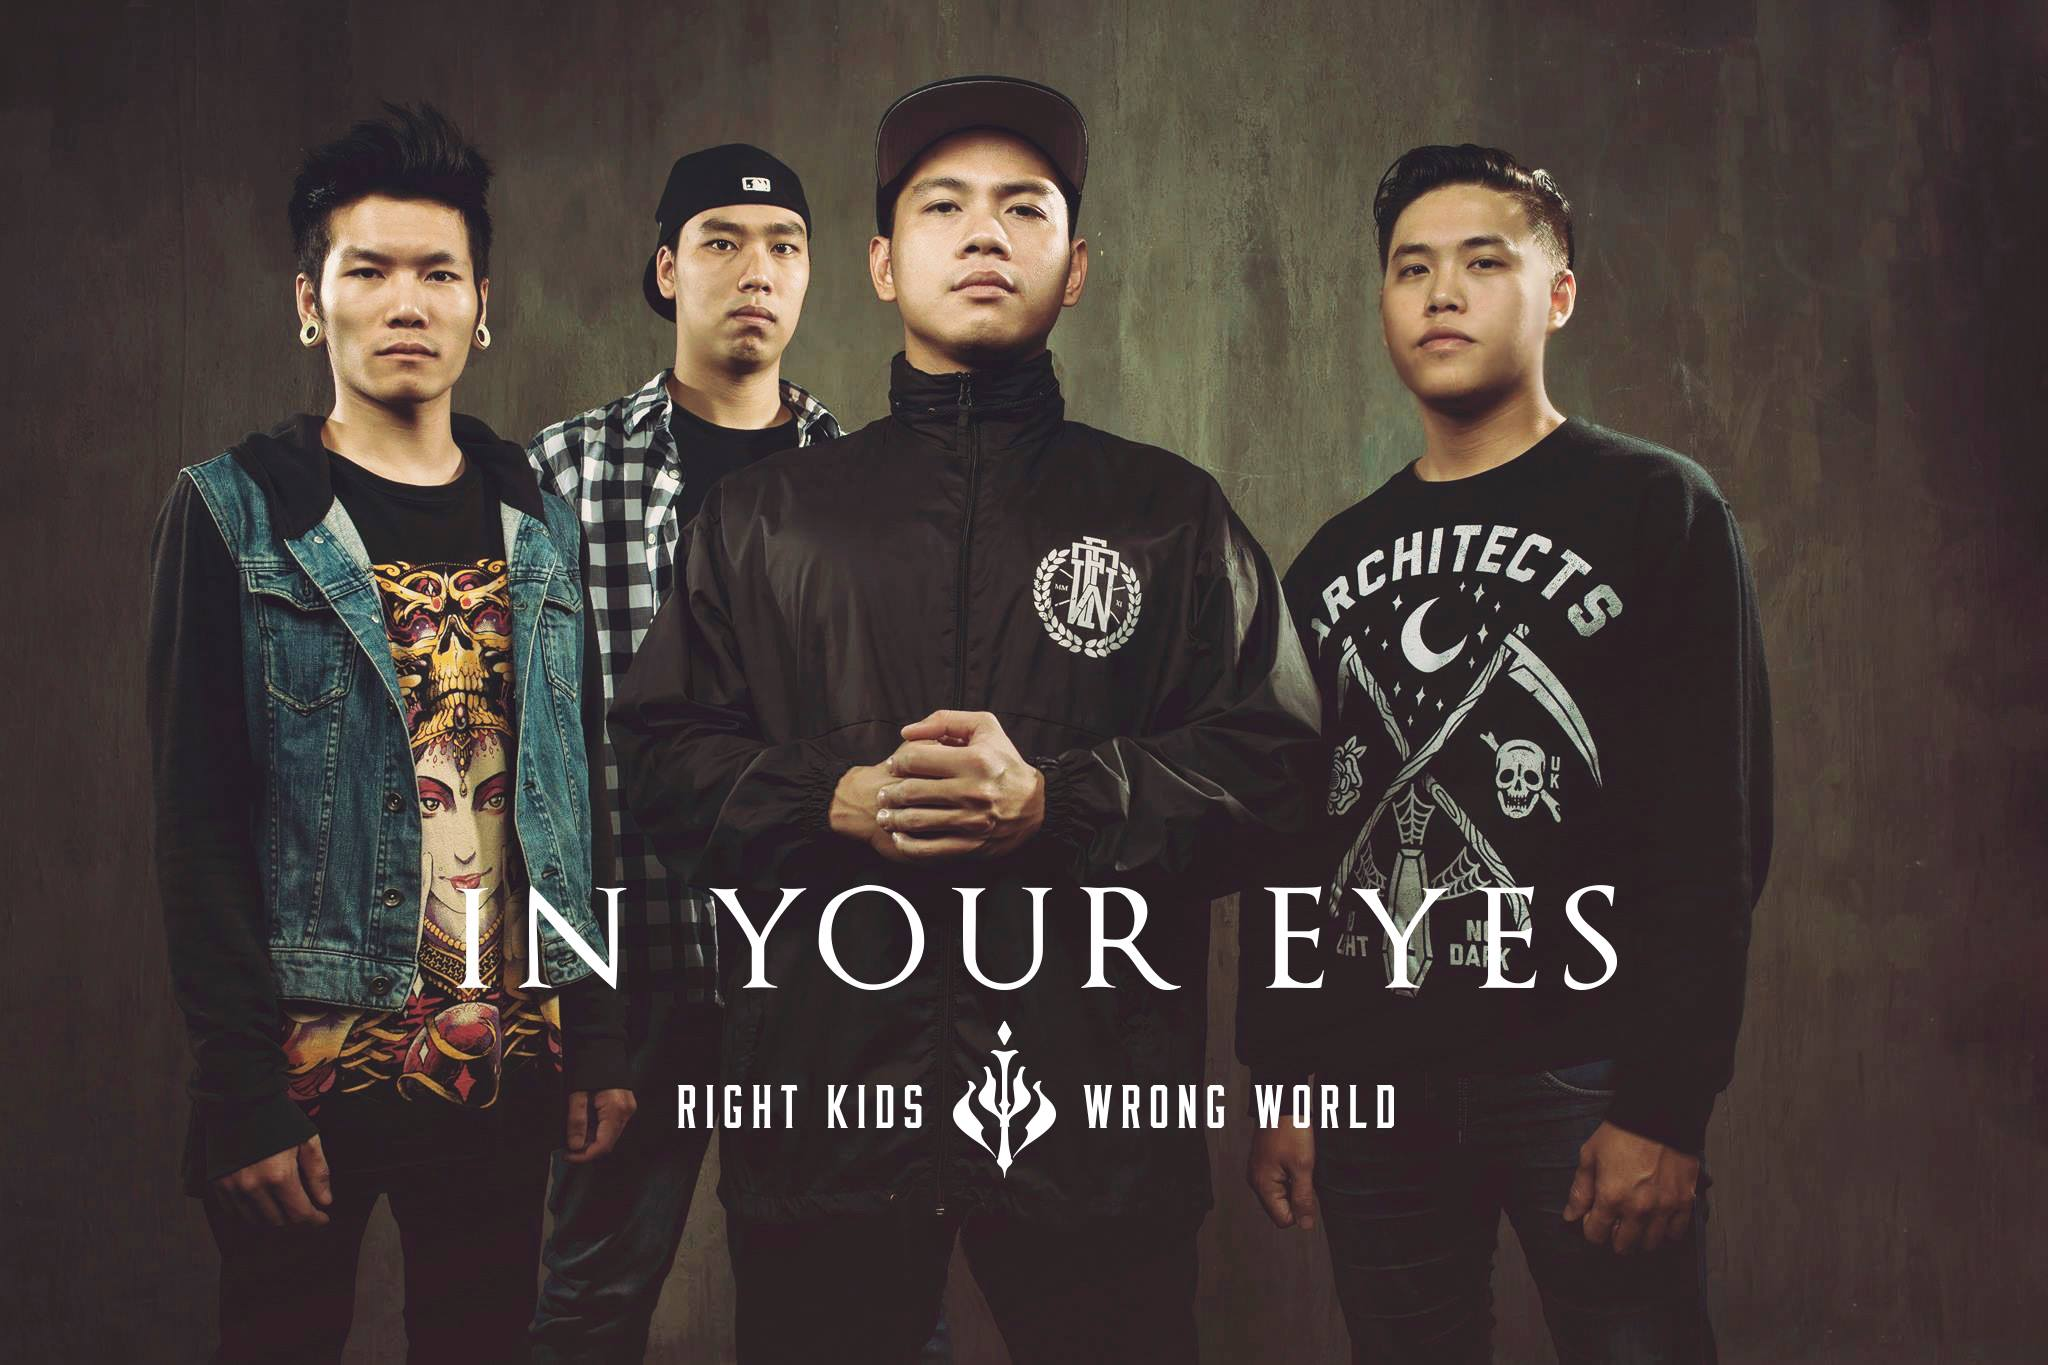 Heres The Second Video Released By Vietnams Metalcore Band In Your Eyes Off Their Recent EP Entitled Right Kids Wrong World Its An Emotional Number And